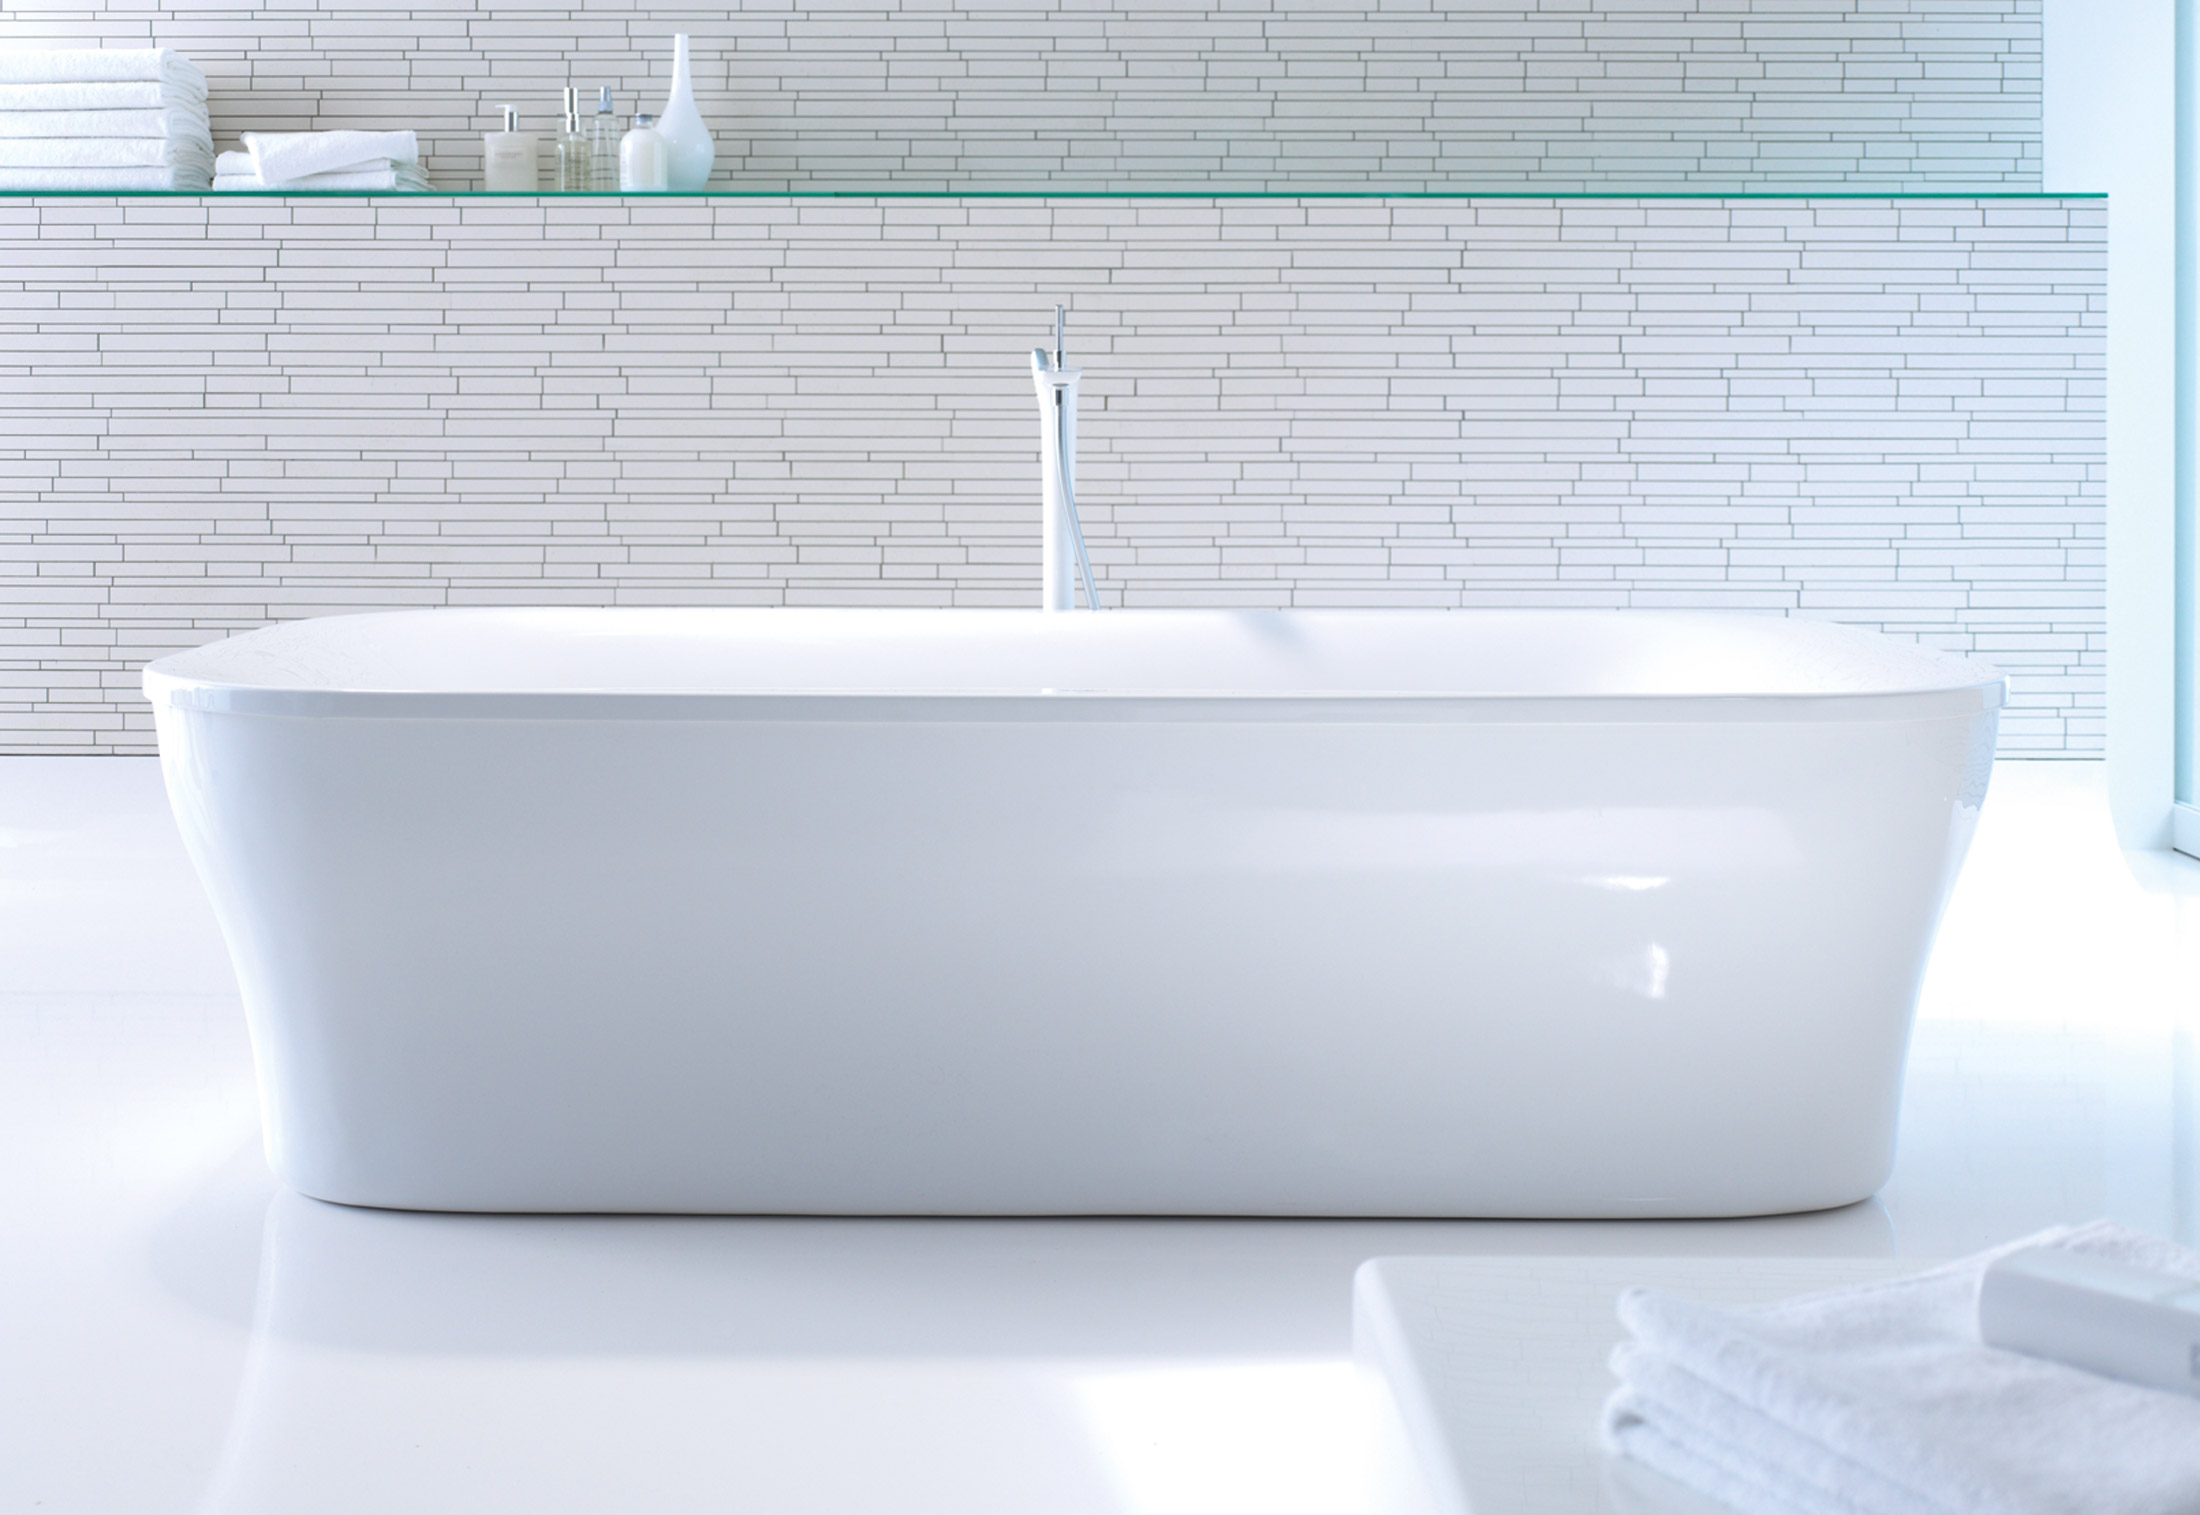 bathtubs il bagno bathrooms shower trays paiova einbau tub teilmilieu tubs duravit and